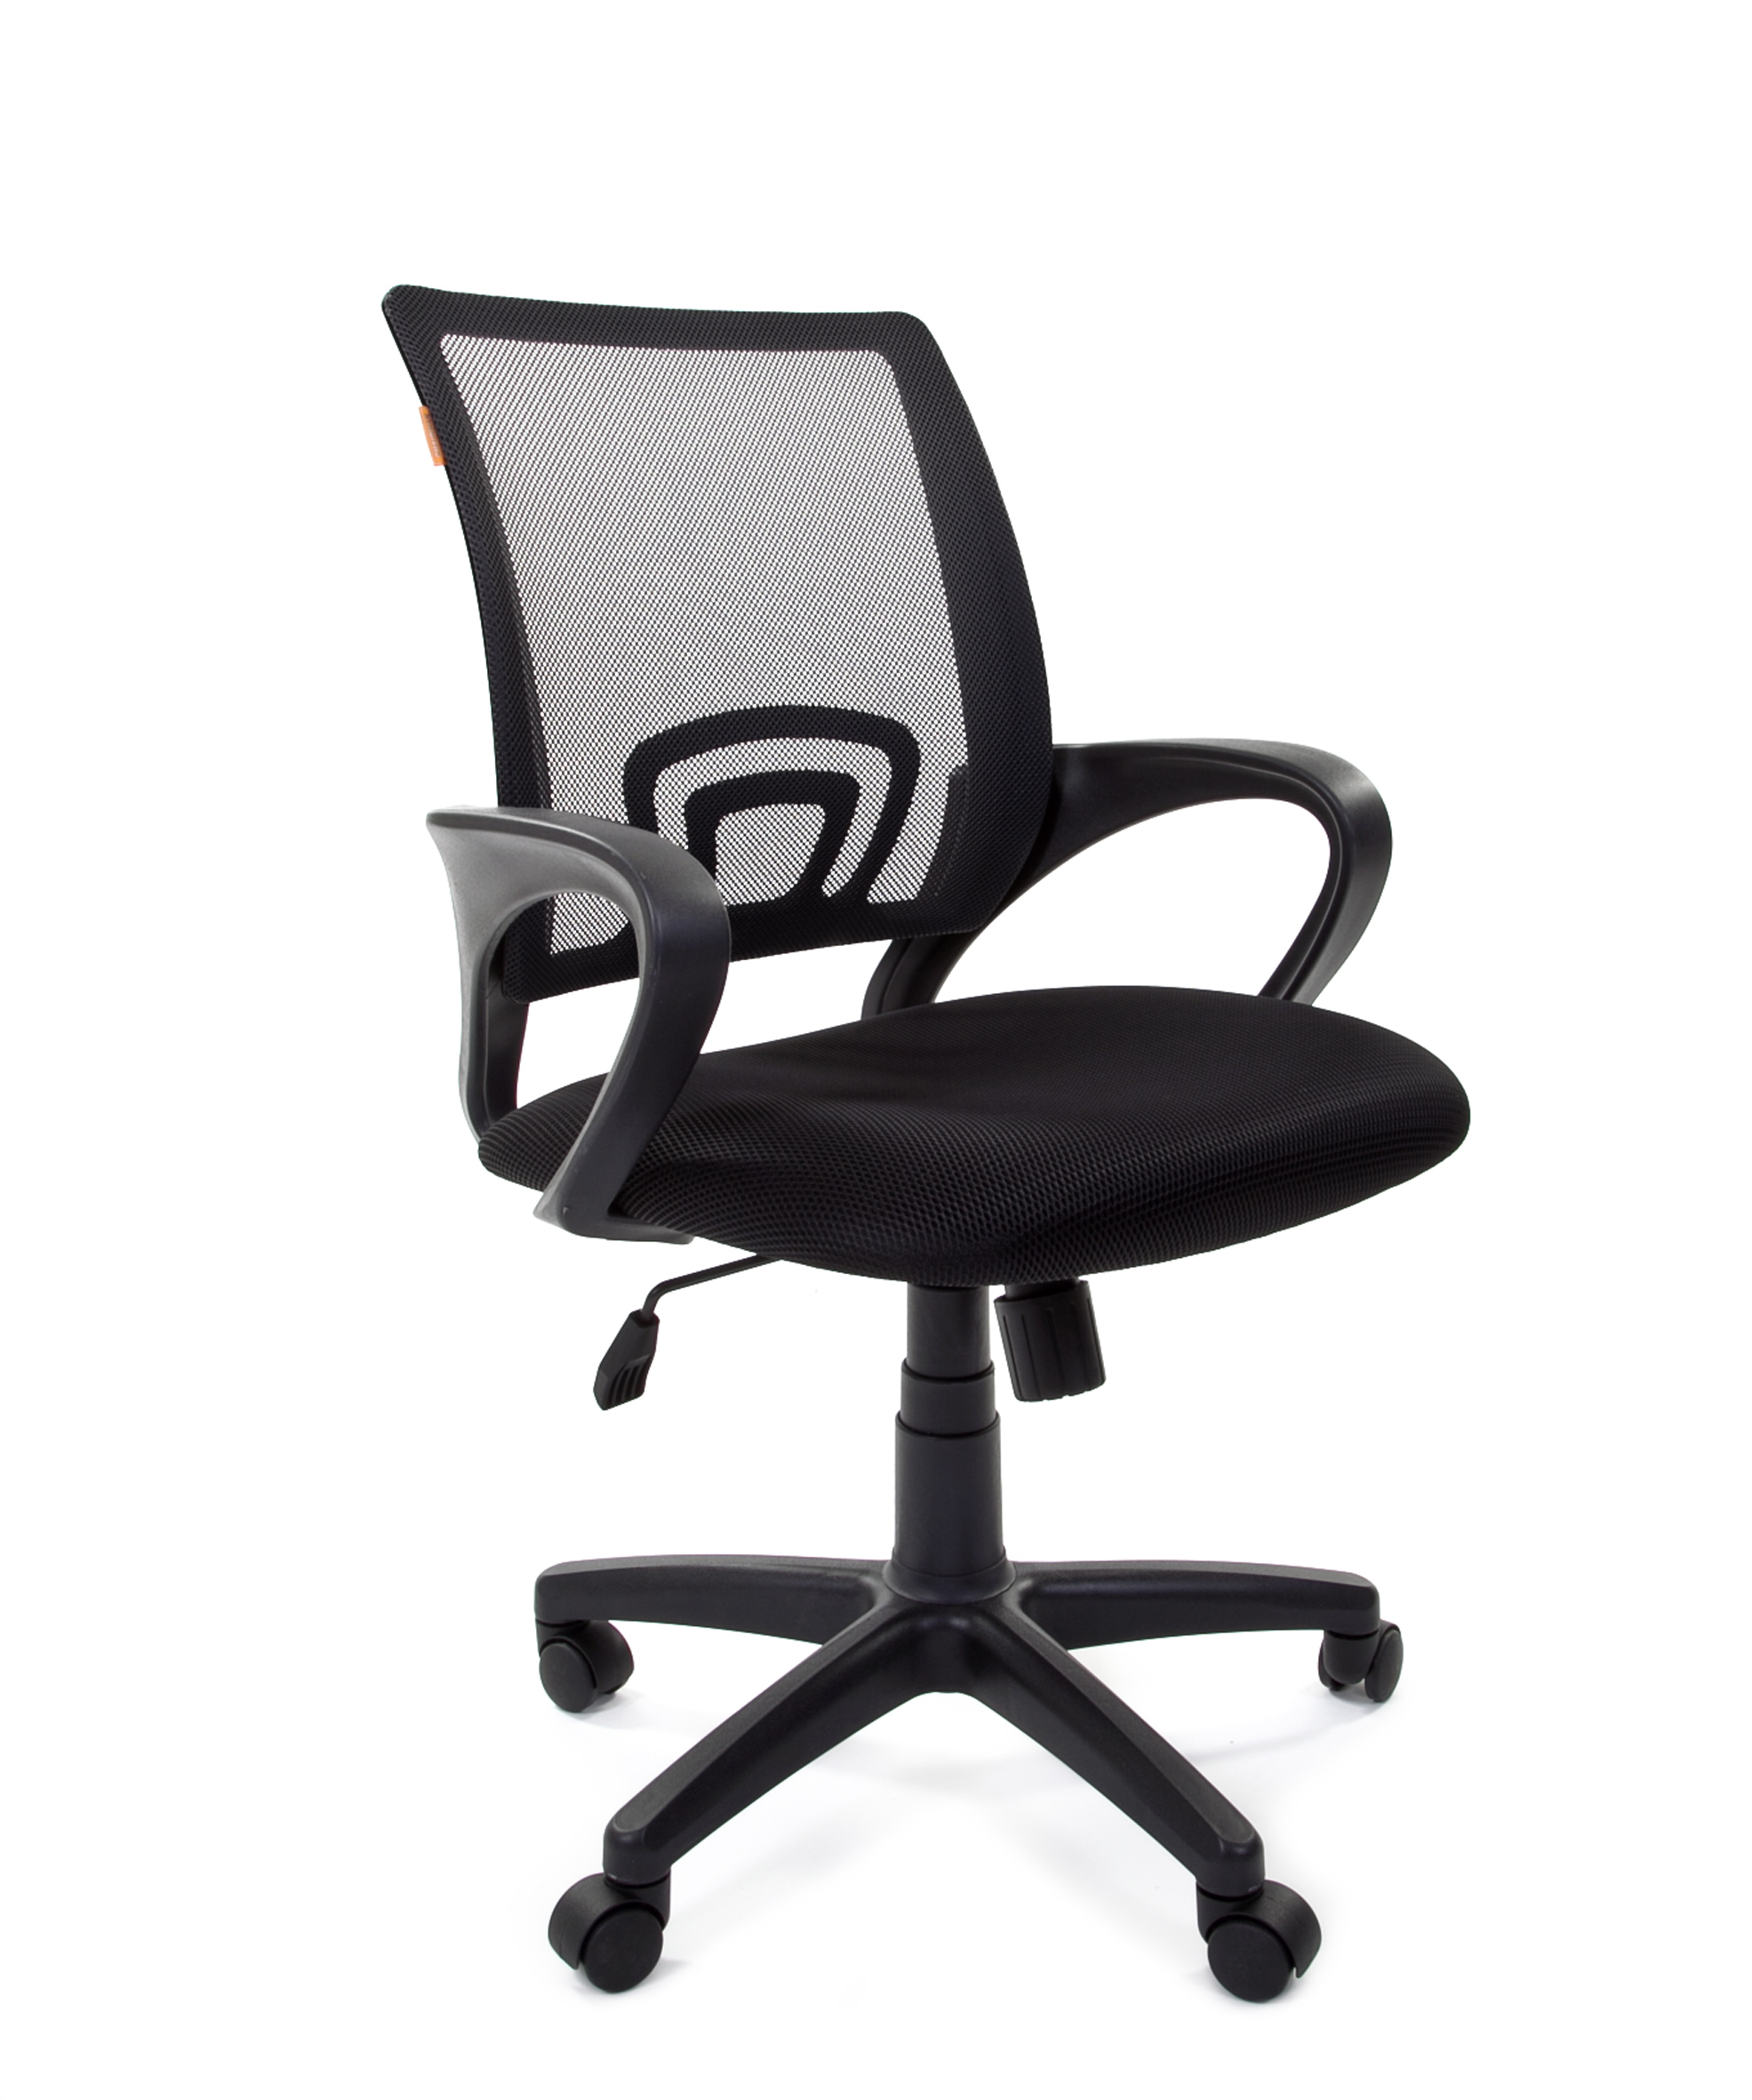 Office Chair ZK696BK